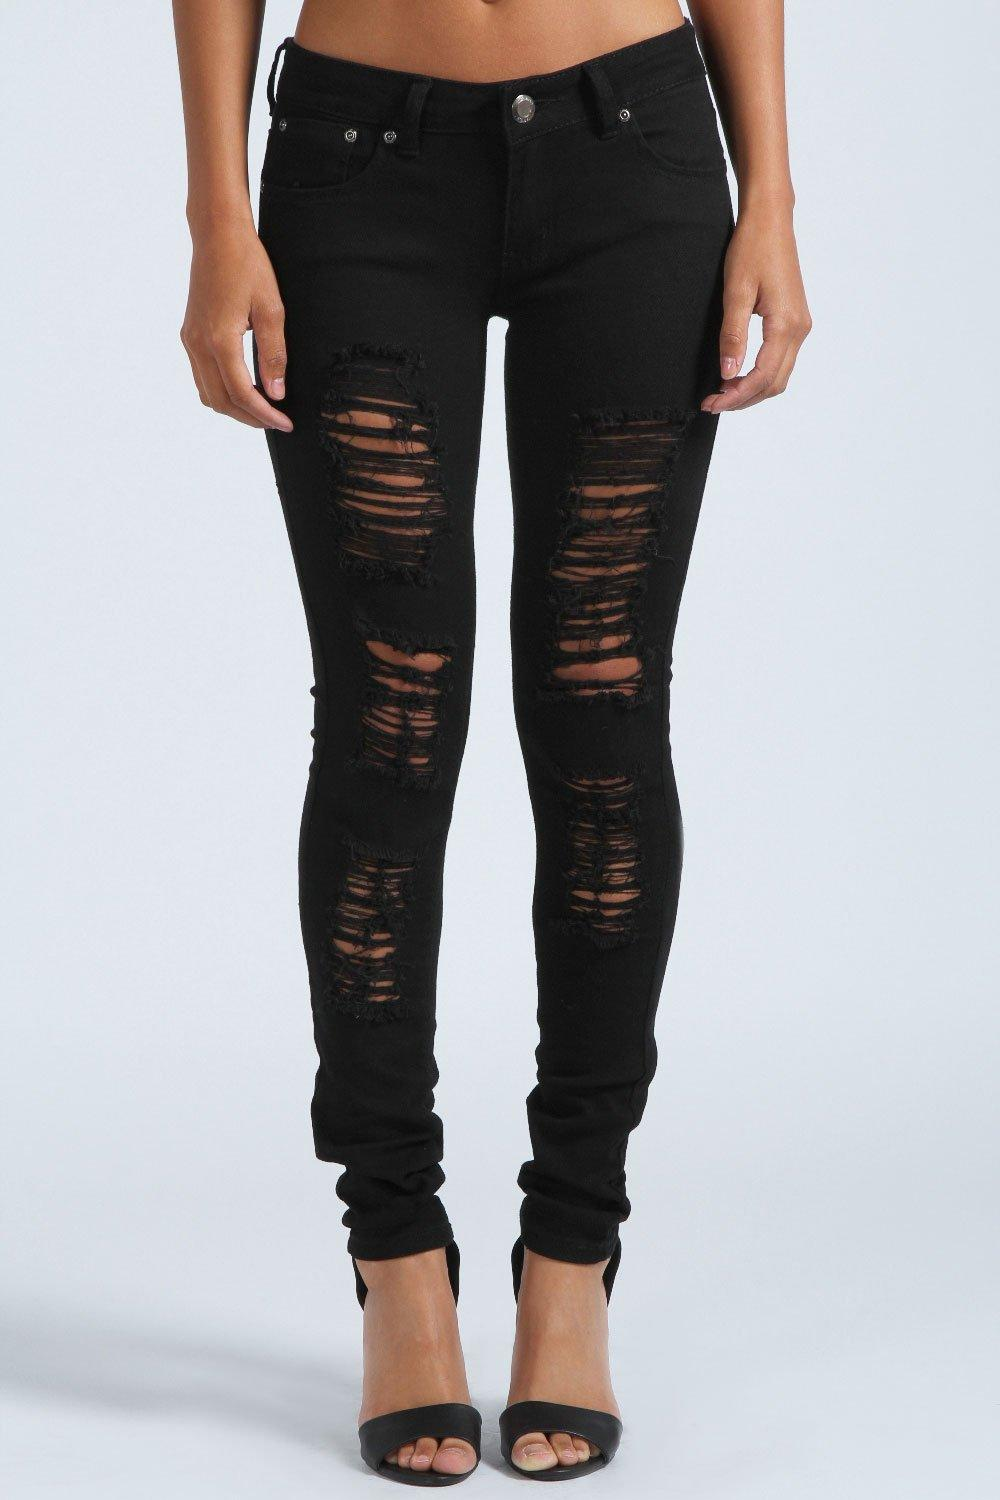 Ripped Up Black Skinny Jeans - Xtellar Jeans